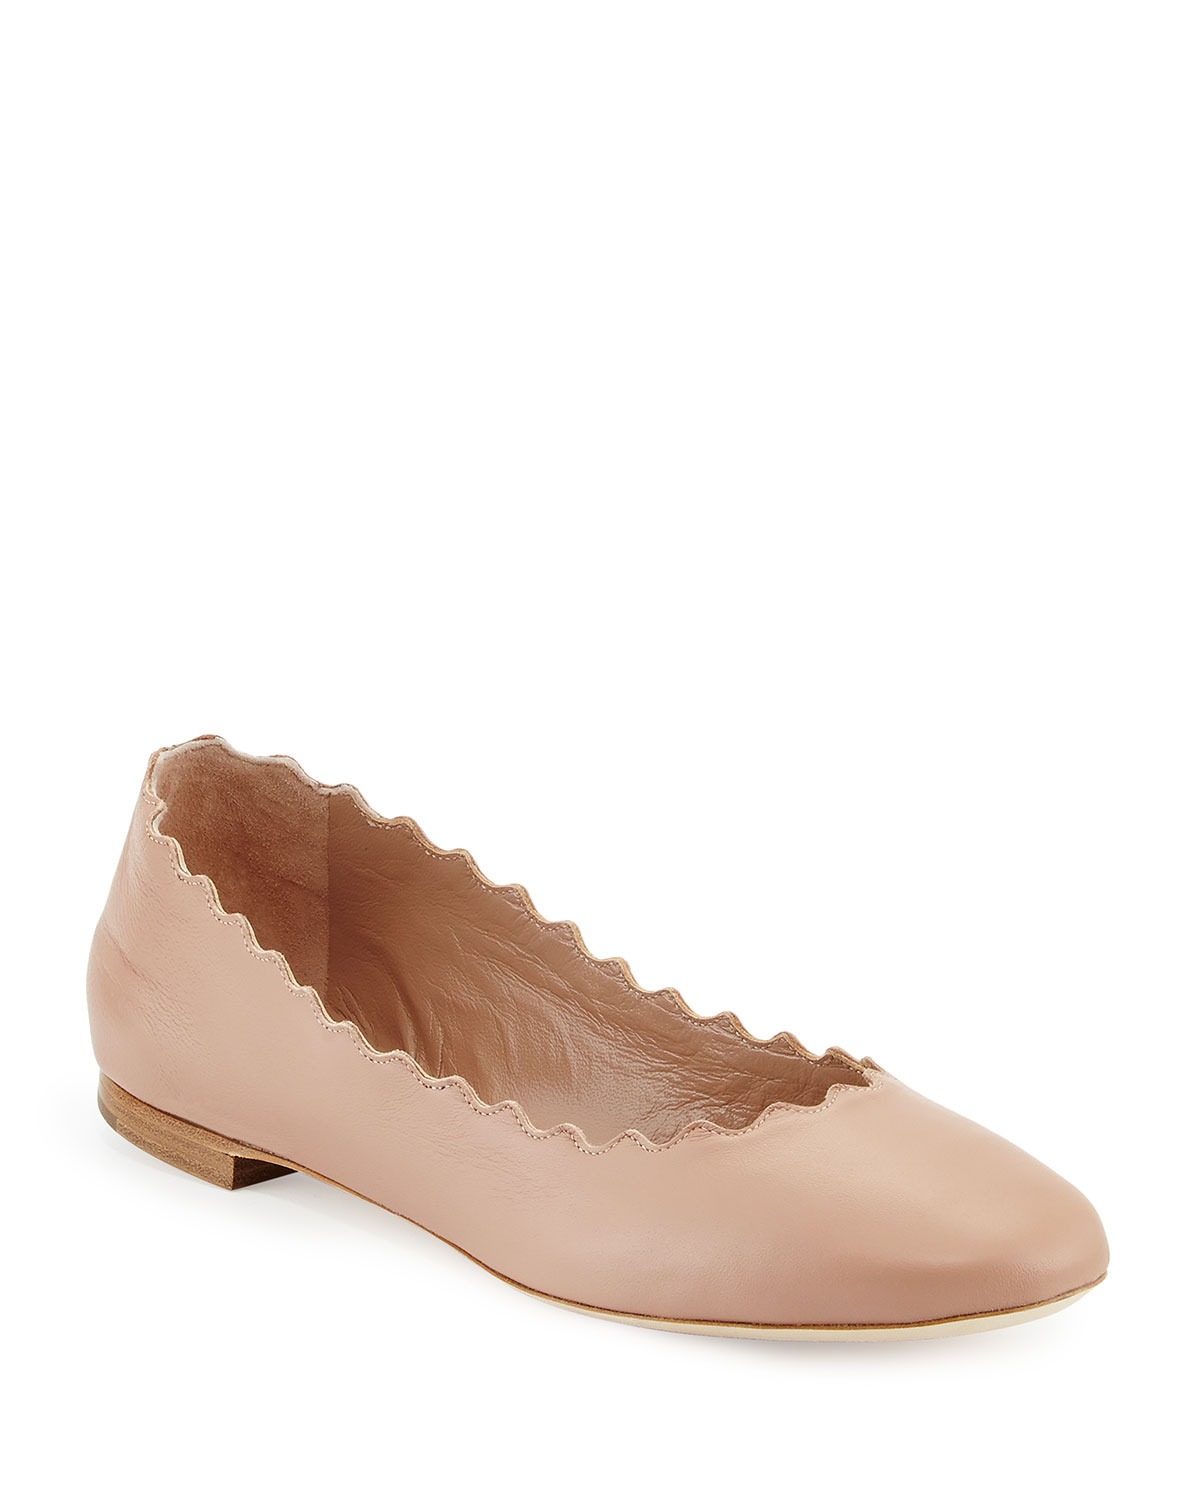 e98c02535 Chloe Lauren Scalloped Leather Ballet Flats, Light Pink | Neiman Marcus